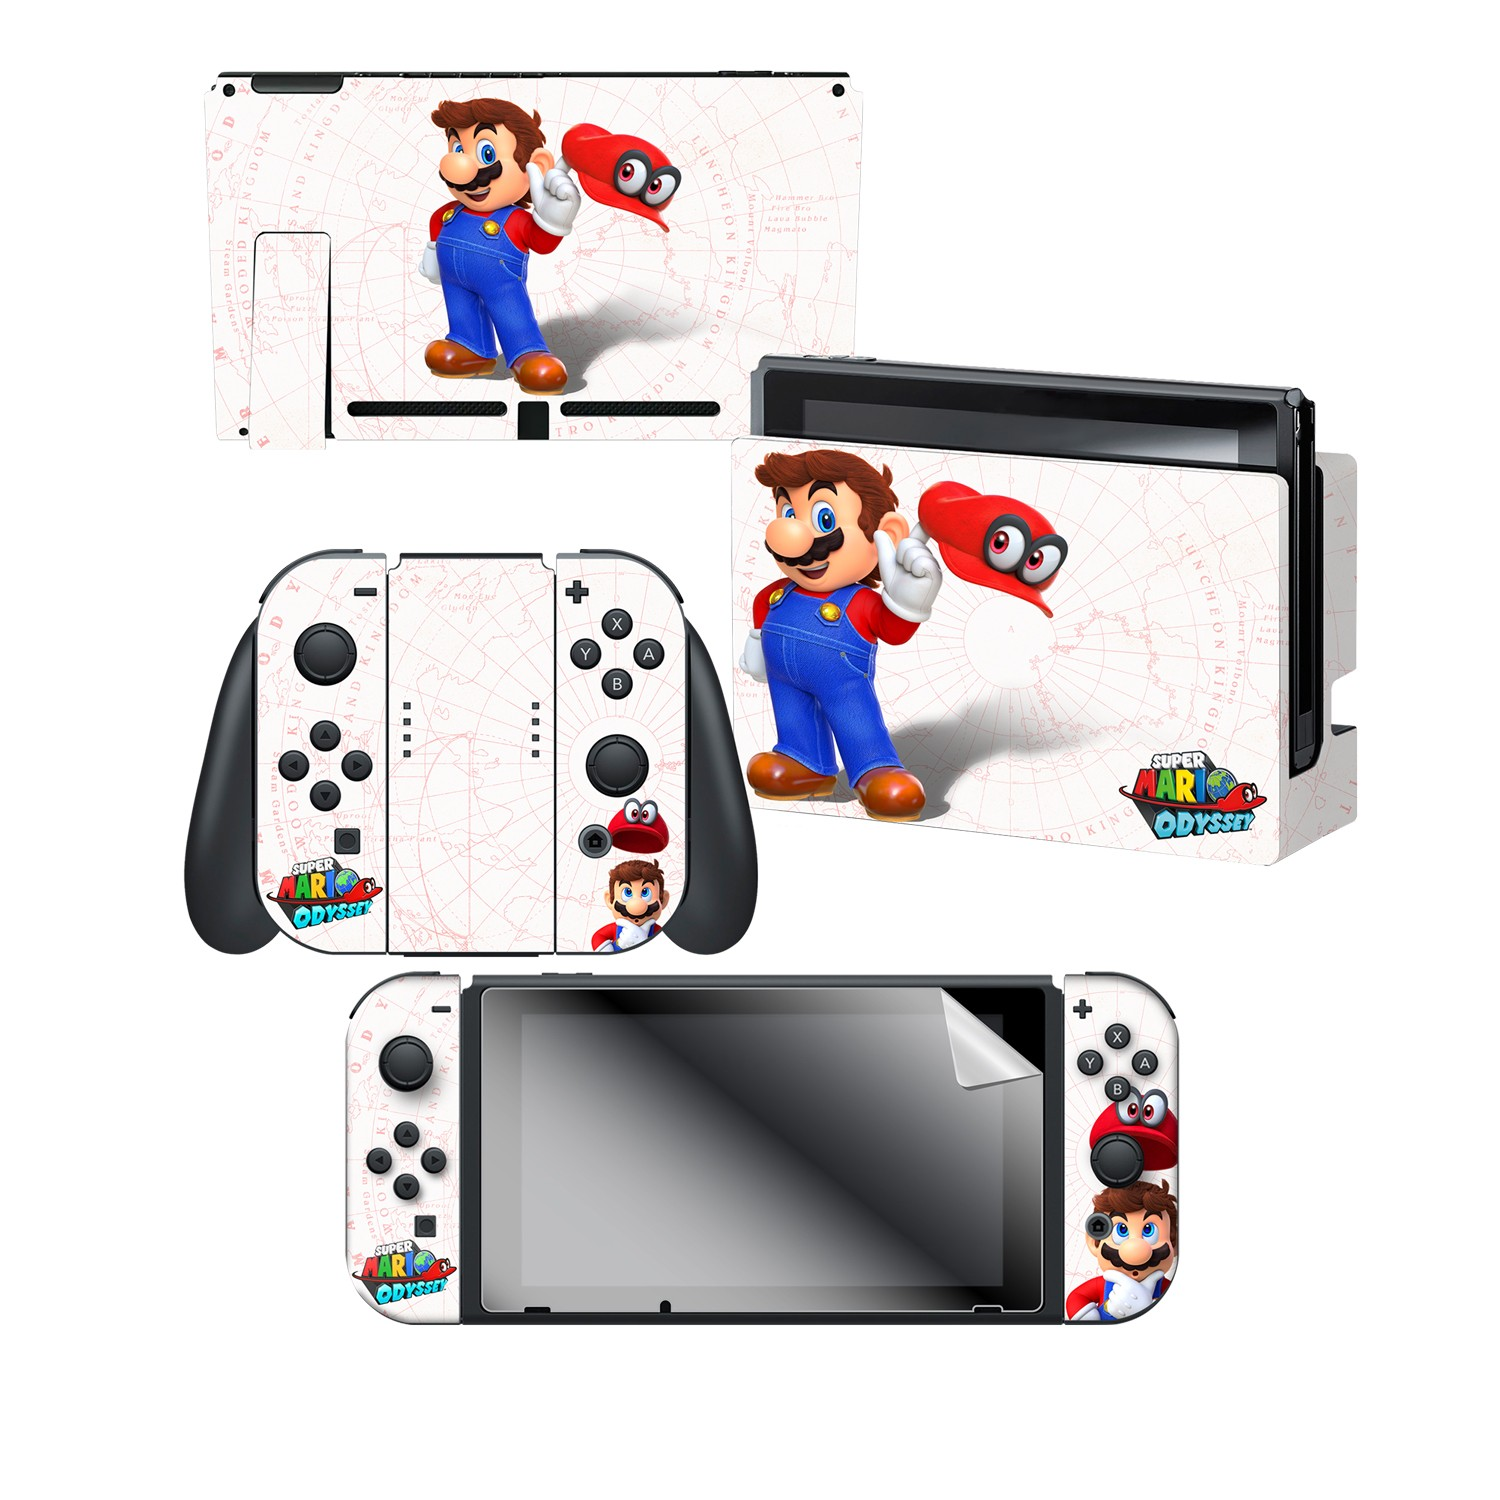 "Super Mario Odyssey™ ""Mario Map"" Nintendo Switch™ Console skin + Dock Skin + Joy-Con™ skin + Joy-Con™ Grip Skin + Screen Protector Bundle Assortment"